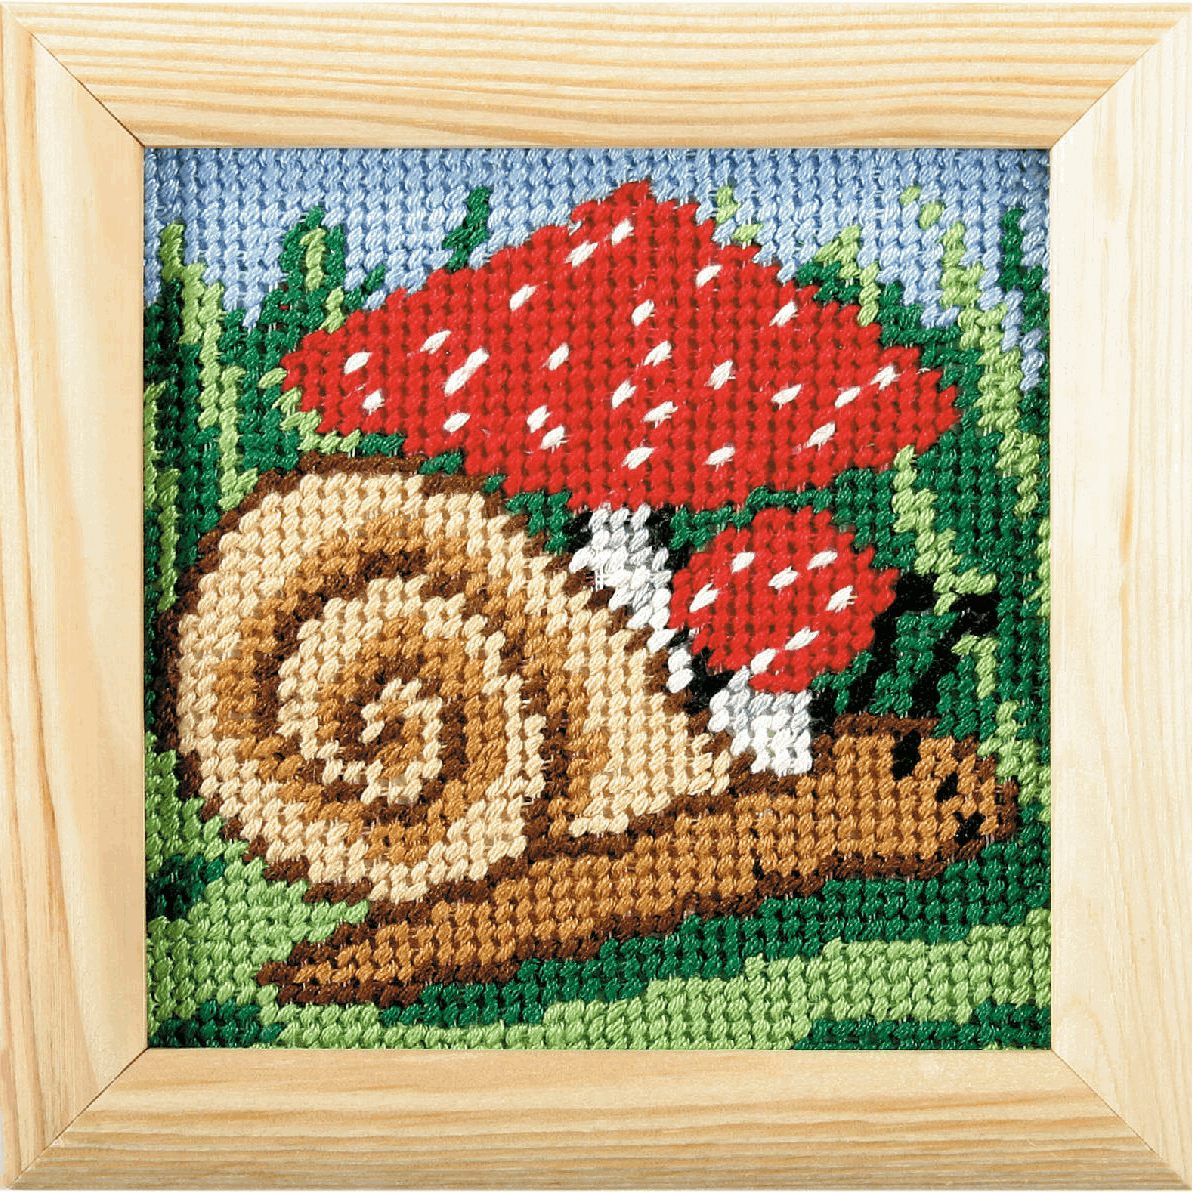 Picture of Needlepoint Kit: My First Embroidery: Snail